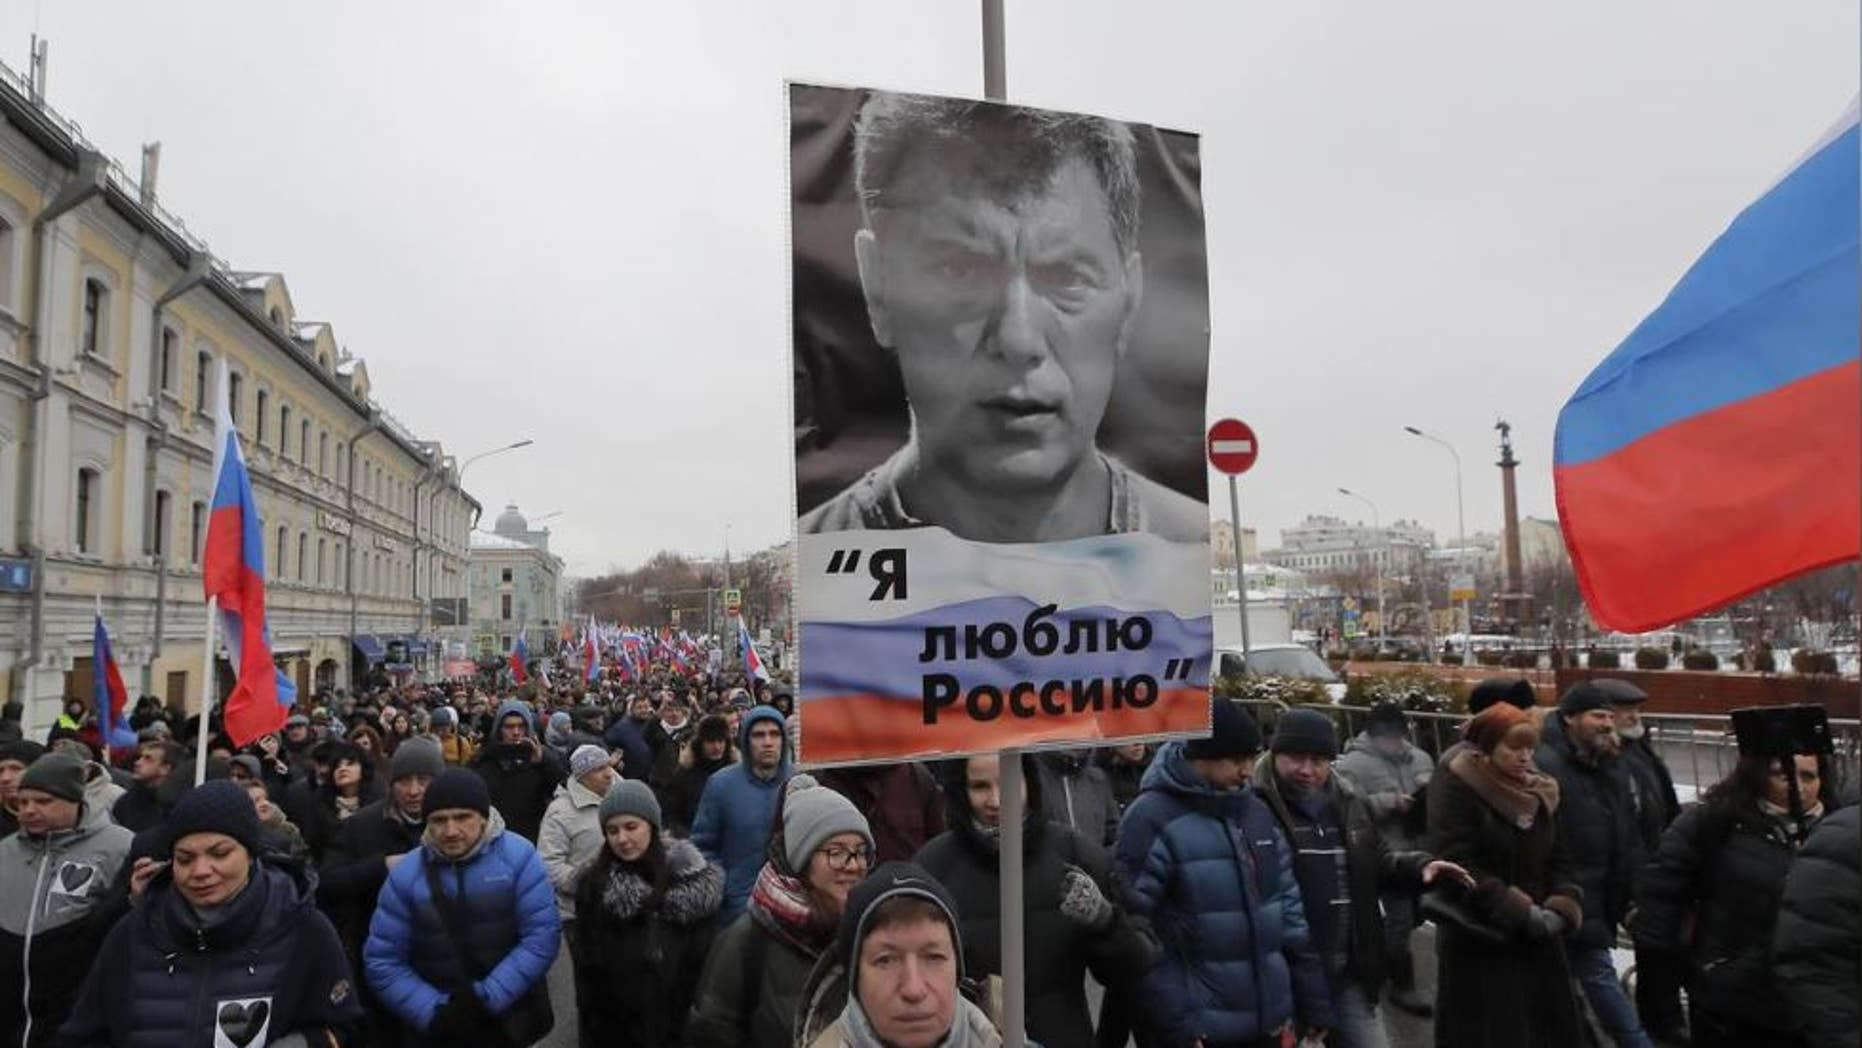 People attend a rally in memory of Russian opposition politician Boris Nemtsov, killed in 201[ads1]5 in Moscow, Russia February 24, 2019 The plaque reads